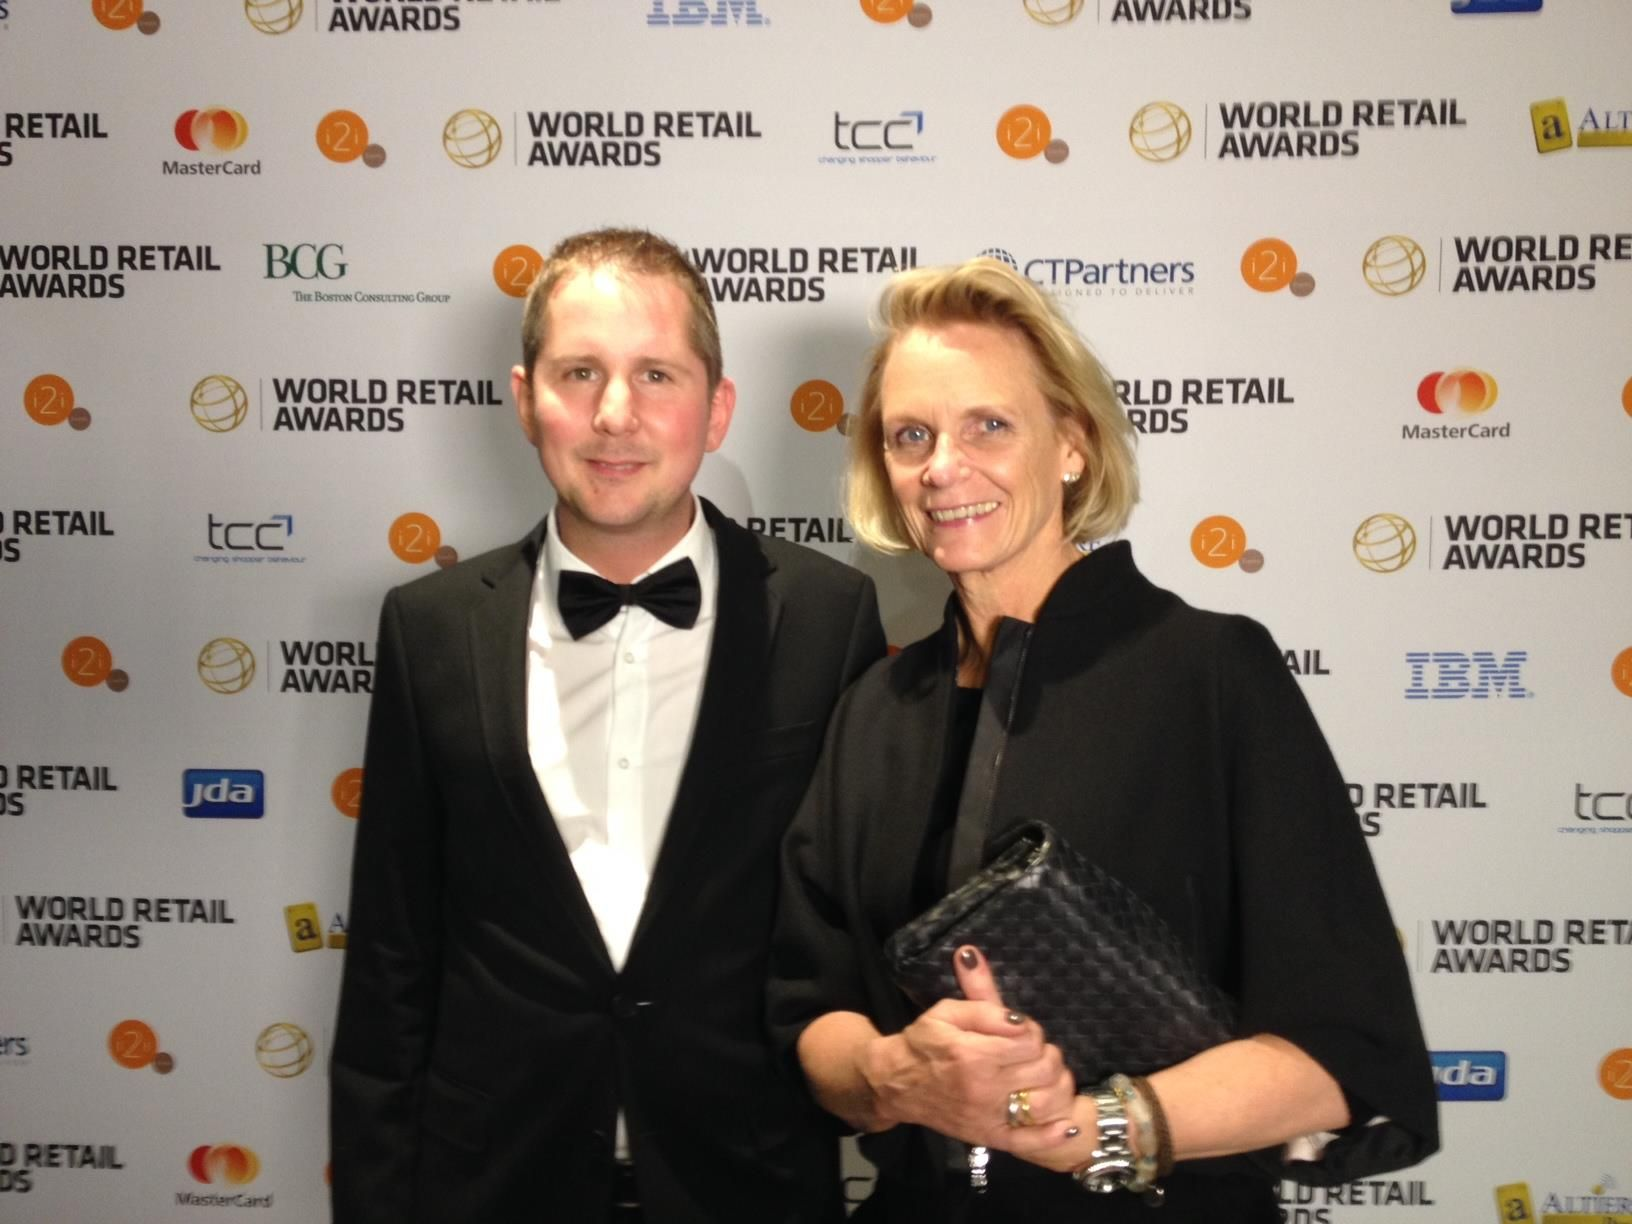 Innenarchitekturbüro Stuttgart jutta blocher and christoph huber at the retail awards 2014 in